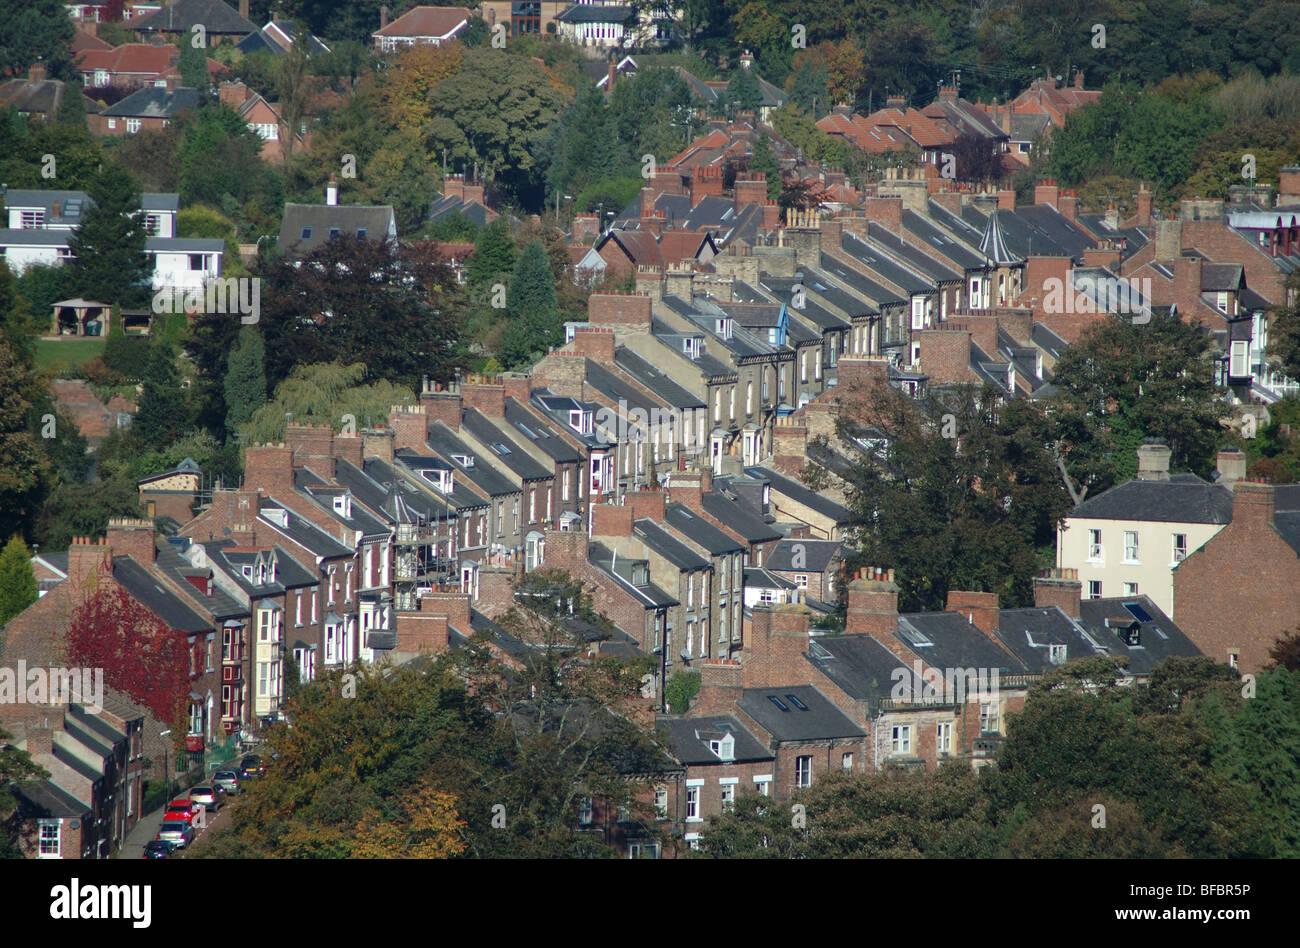 aerial view of terraced housing, Durham, England, UK - Stock Image